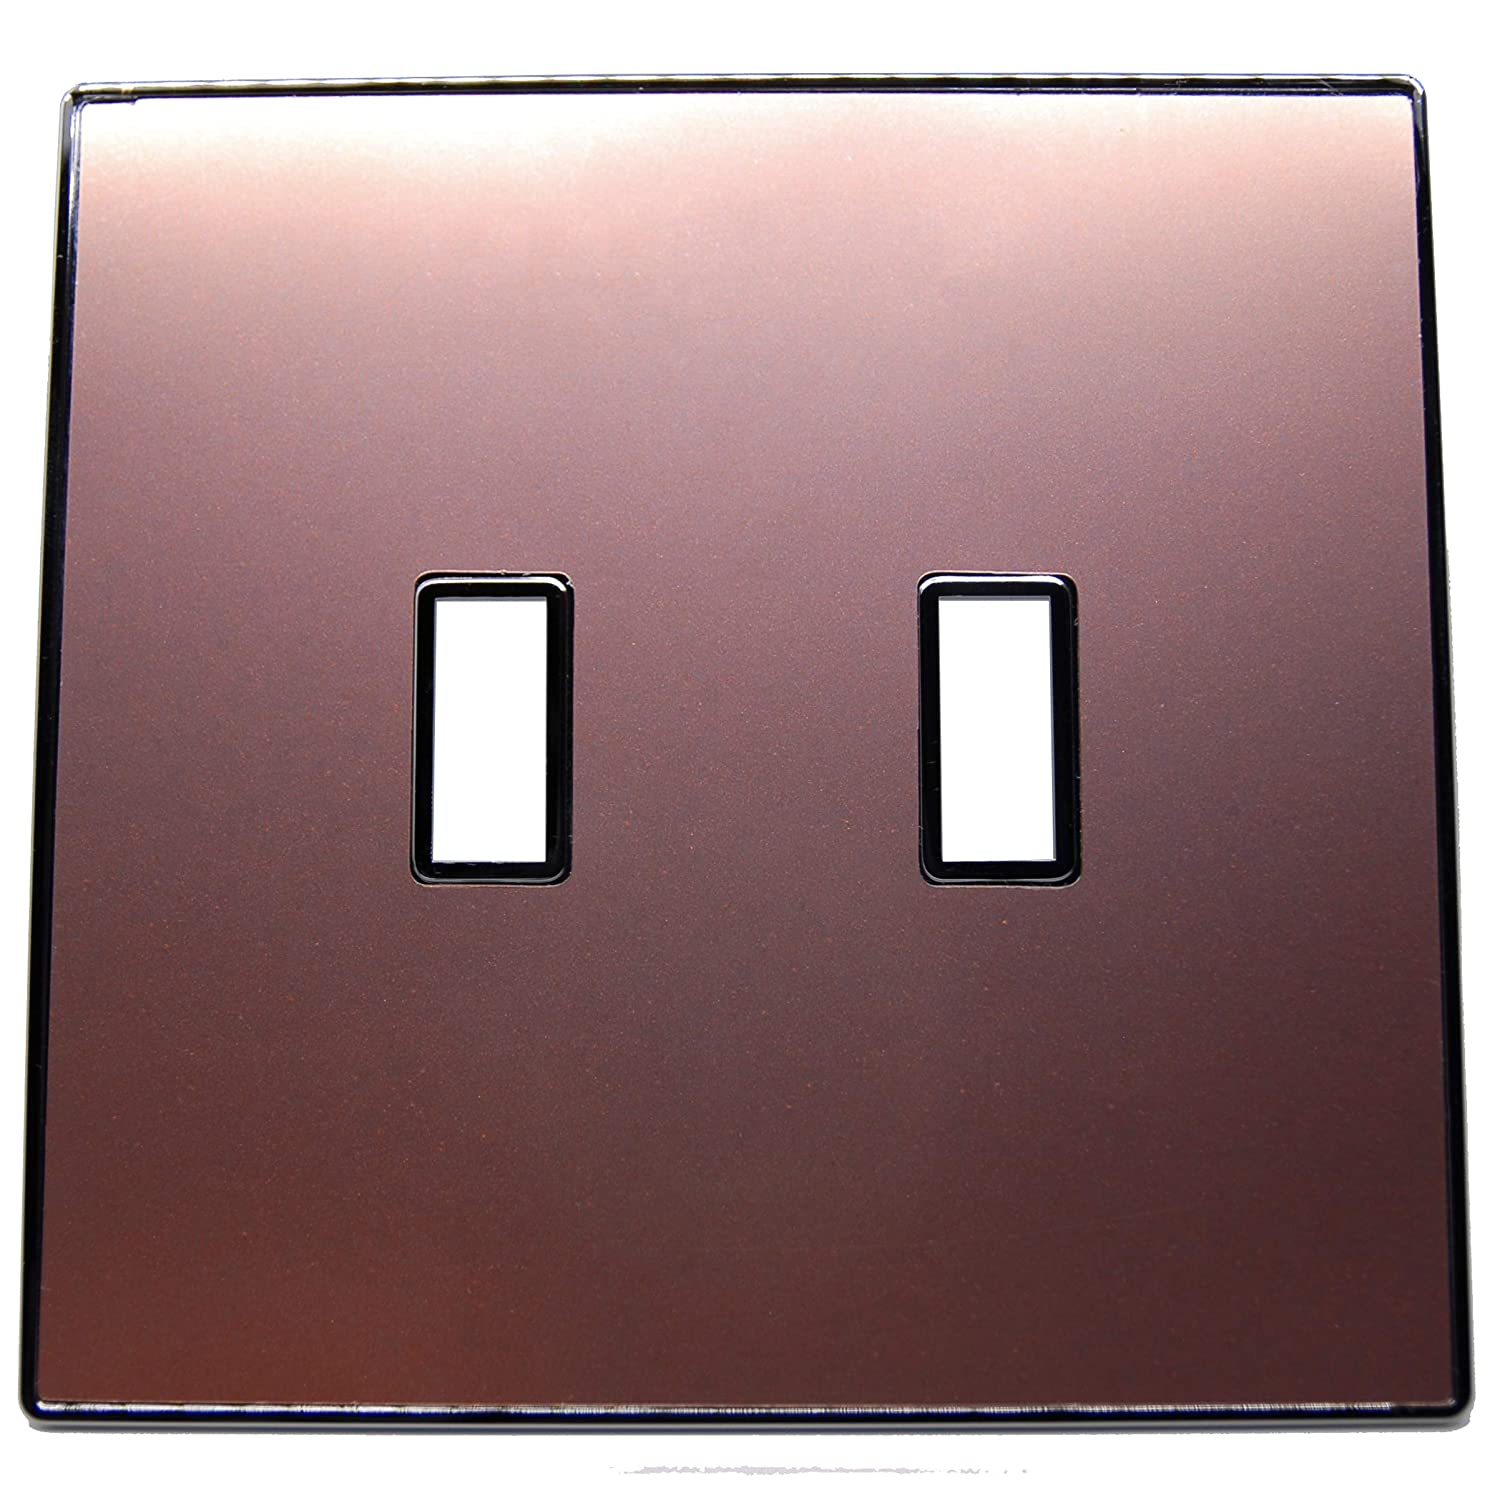 Urban Chameleon Premium 2 Gang Toggle Light Switch Covers Wallplate